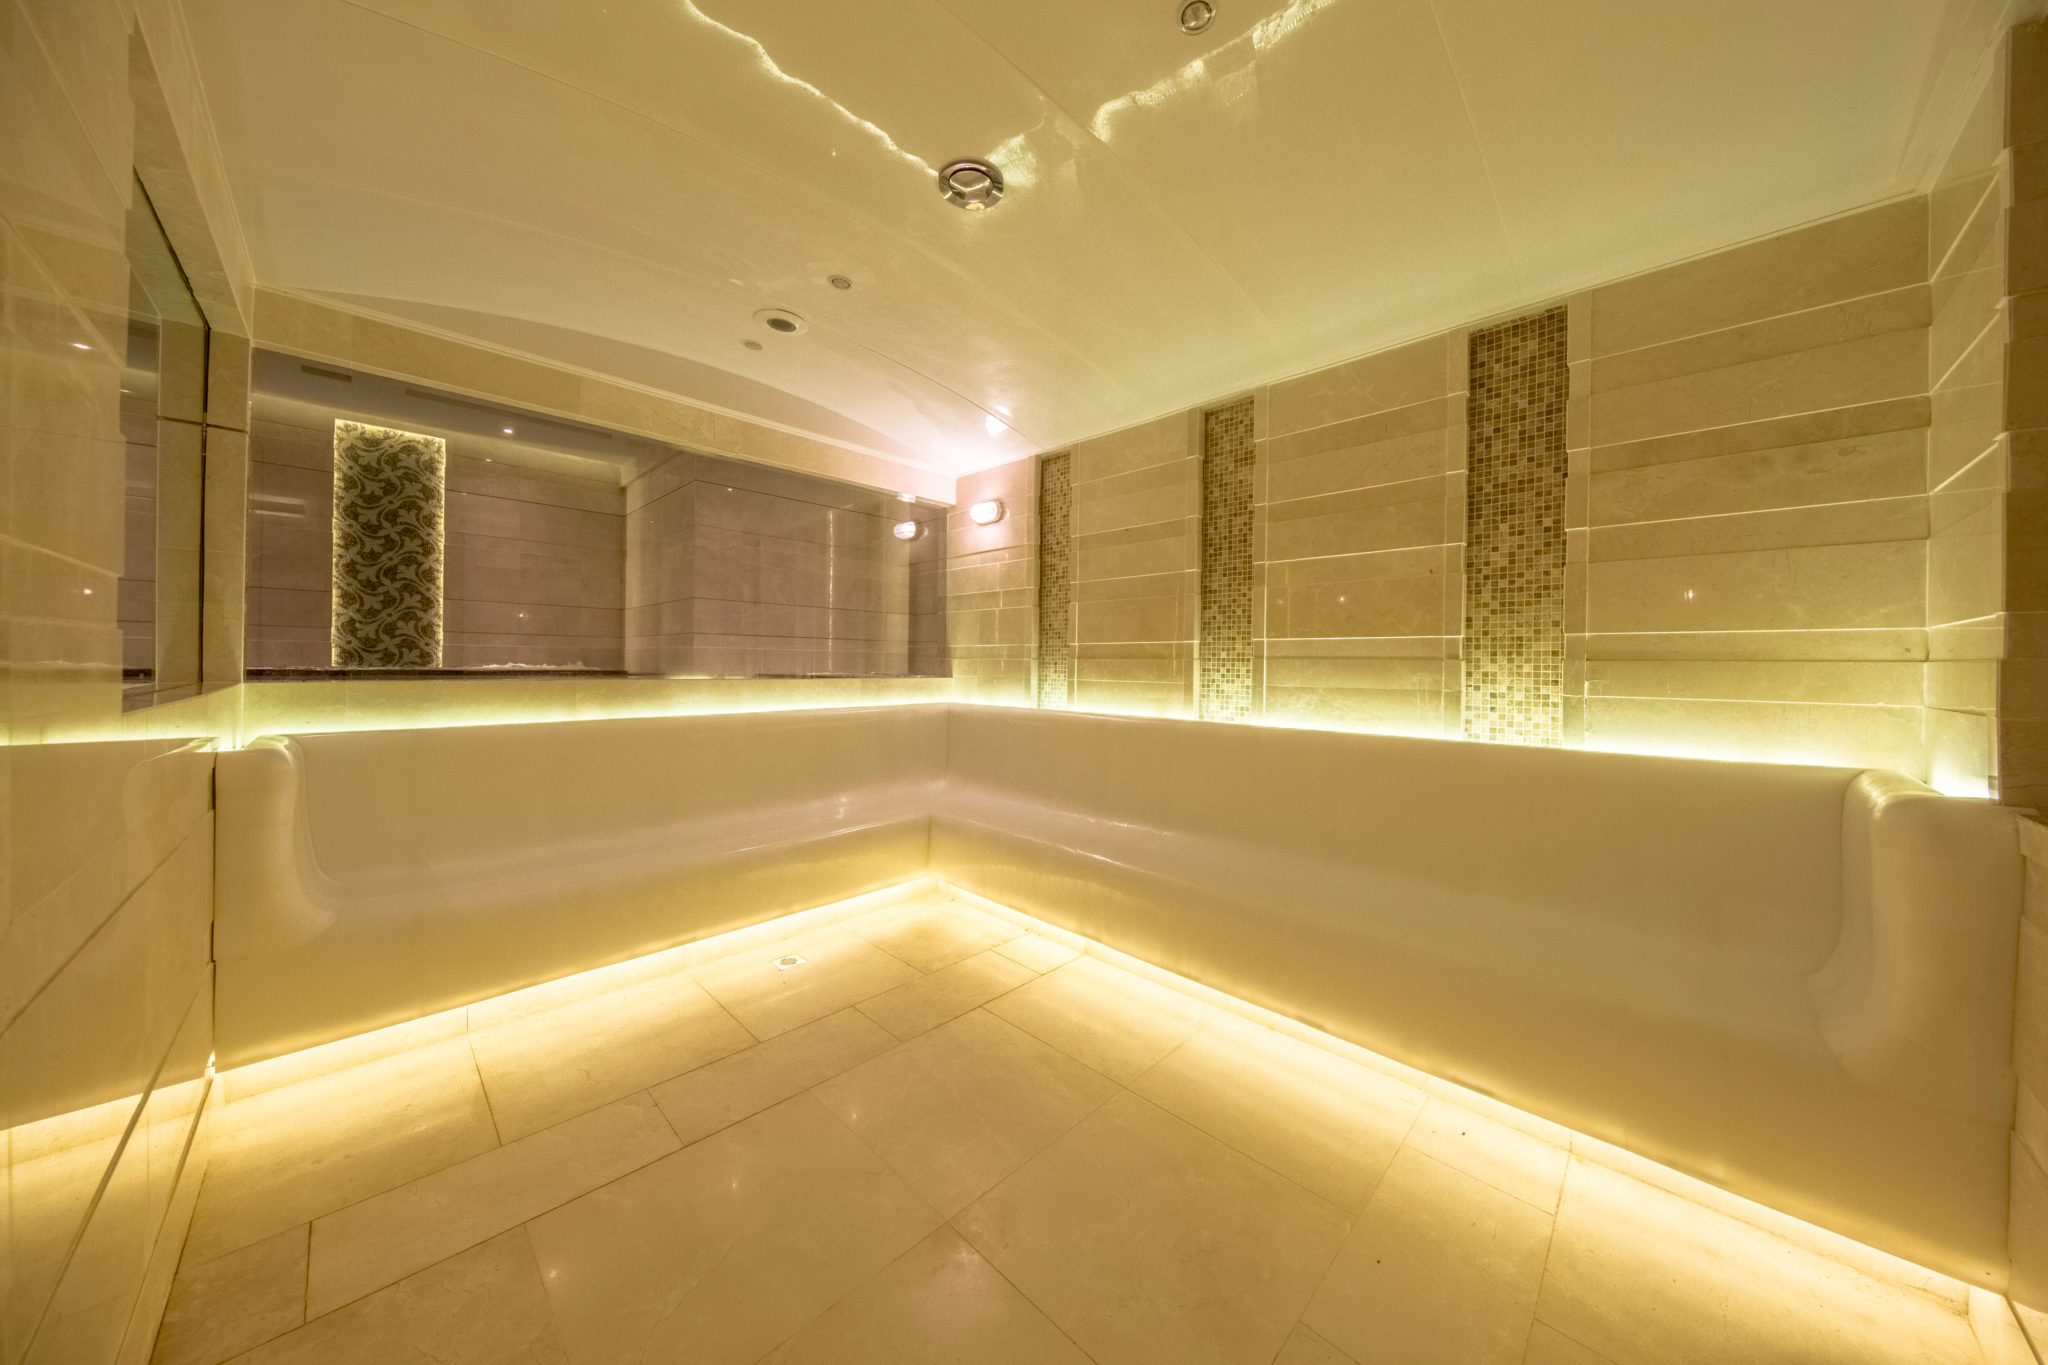 Belgravia steam room with textured stone and polished plaster